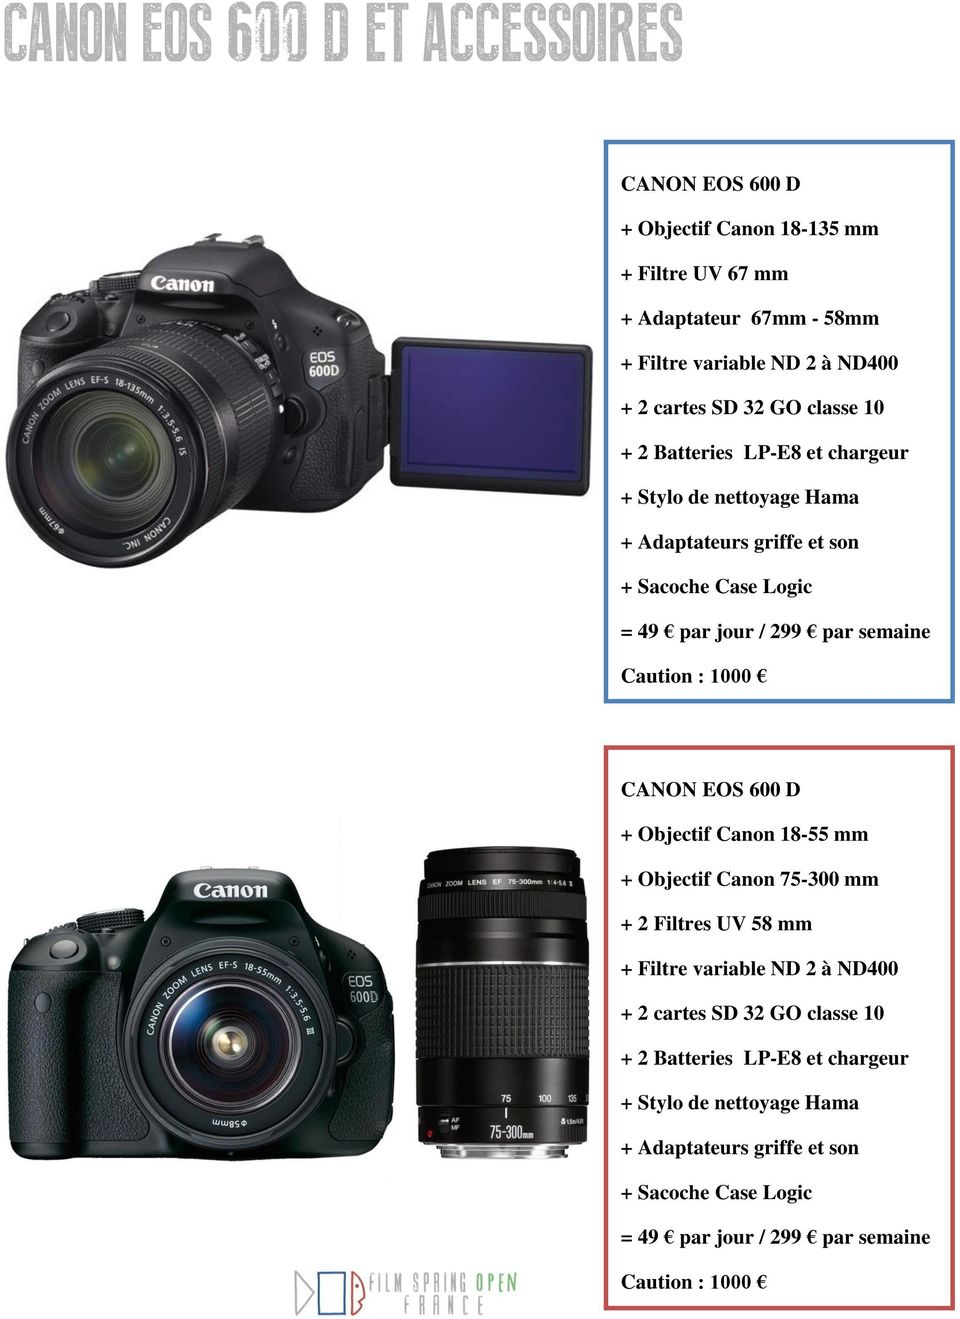 Caution : 1000 CANON EOS 600 D + Objectif Canon 18-55 mm + Objectif Canon 75-300 mm + 2 Filtres UV 58 mm + Filtre variable ND 2 à ND400 + 2 cartes  Caution :